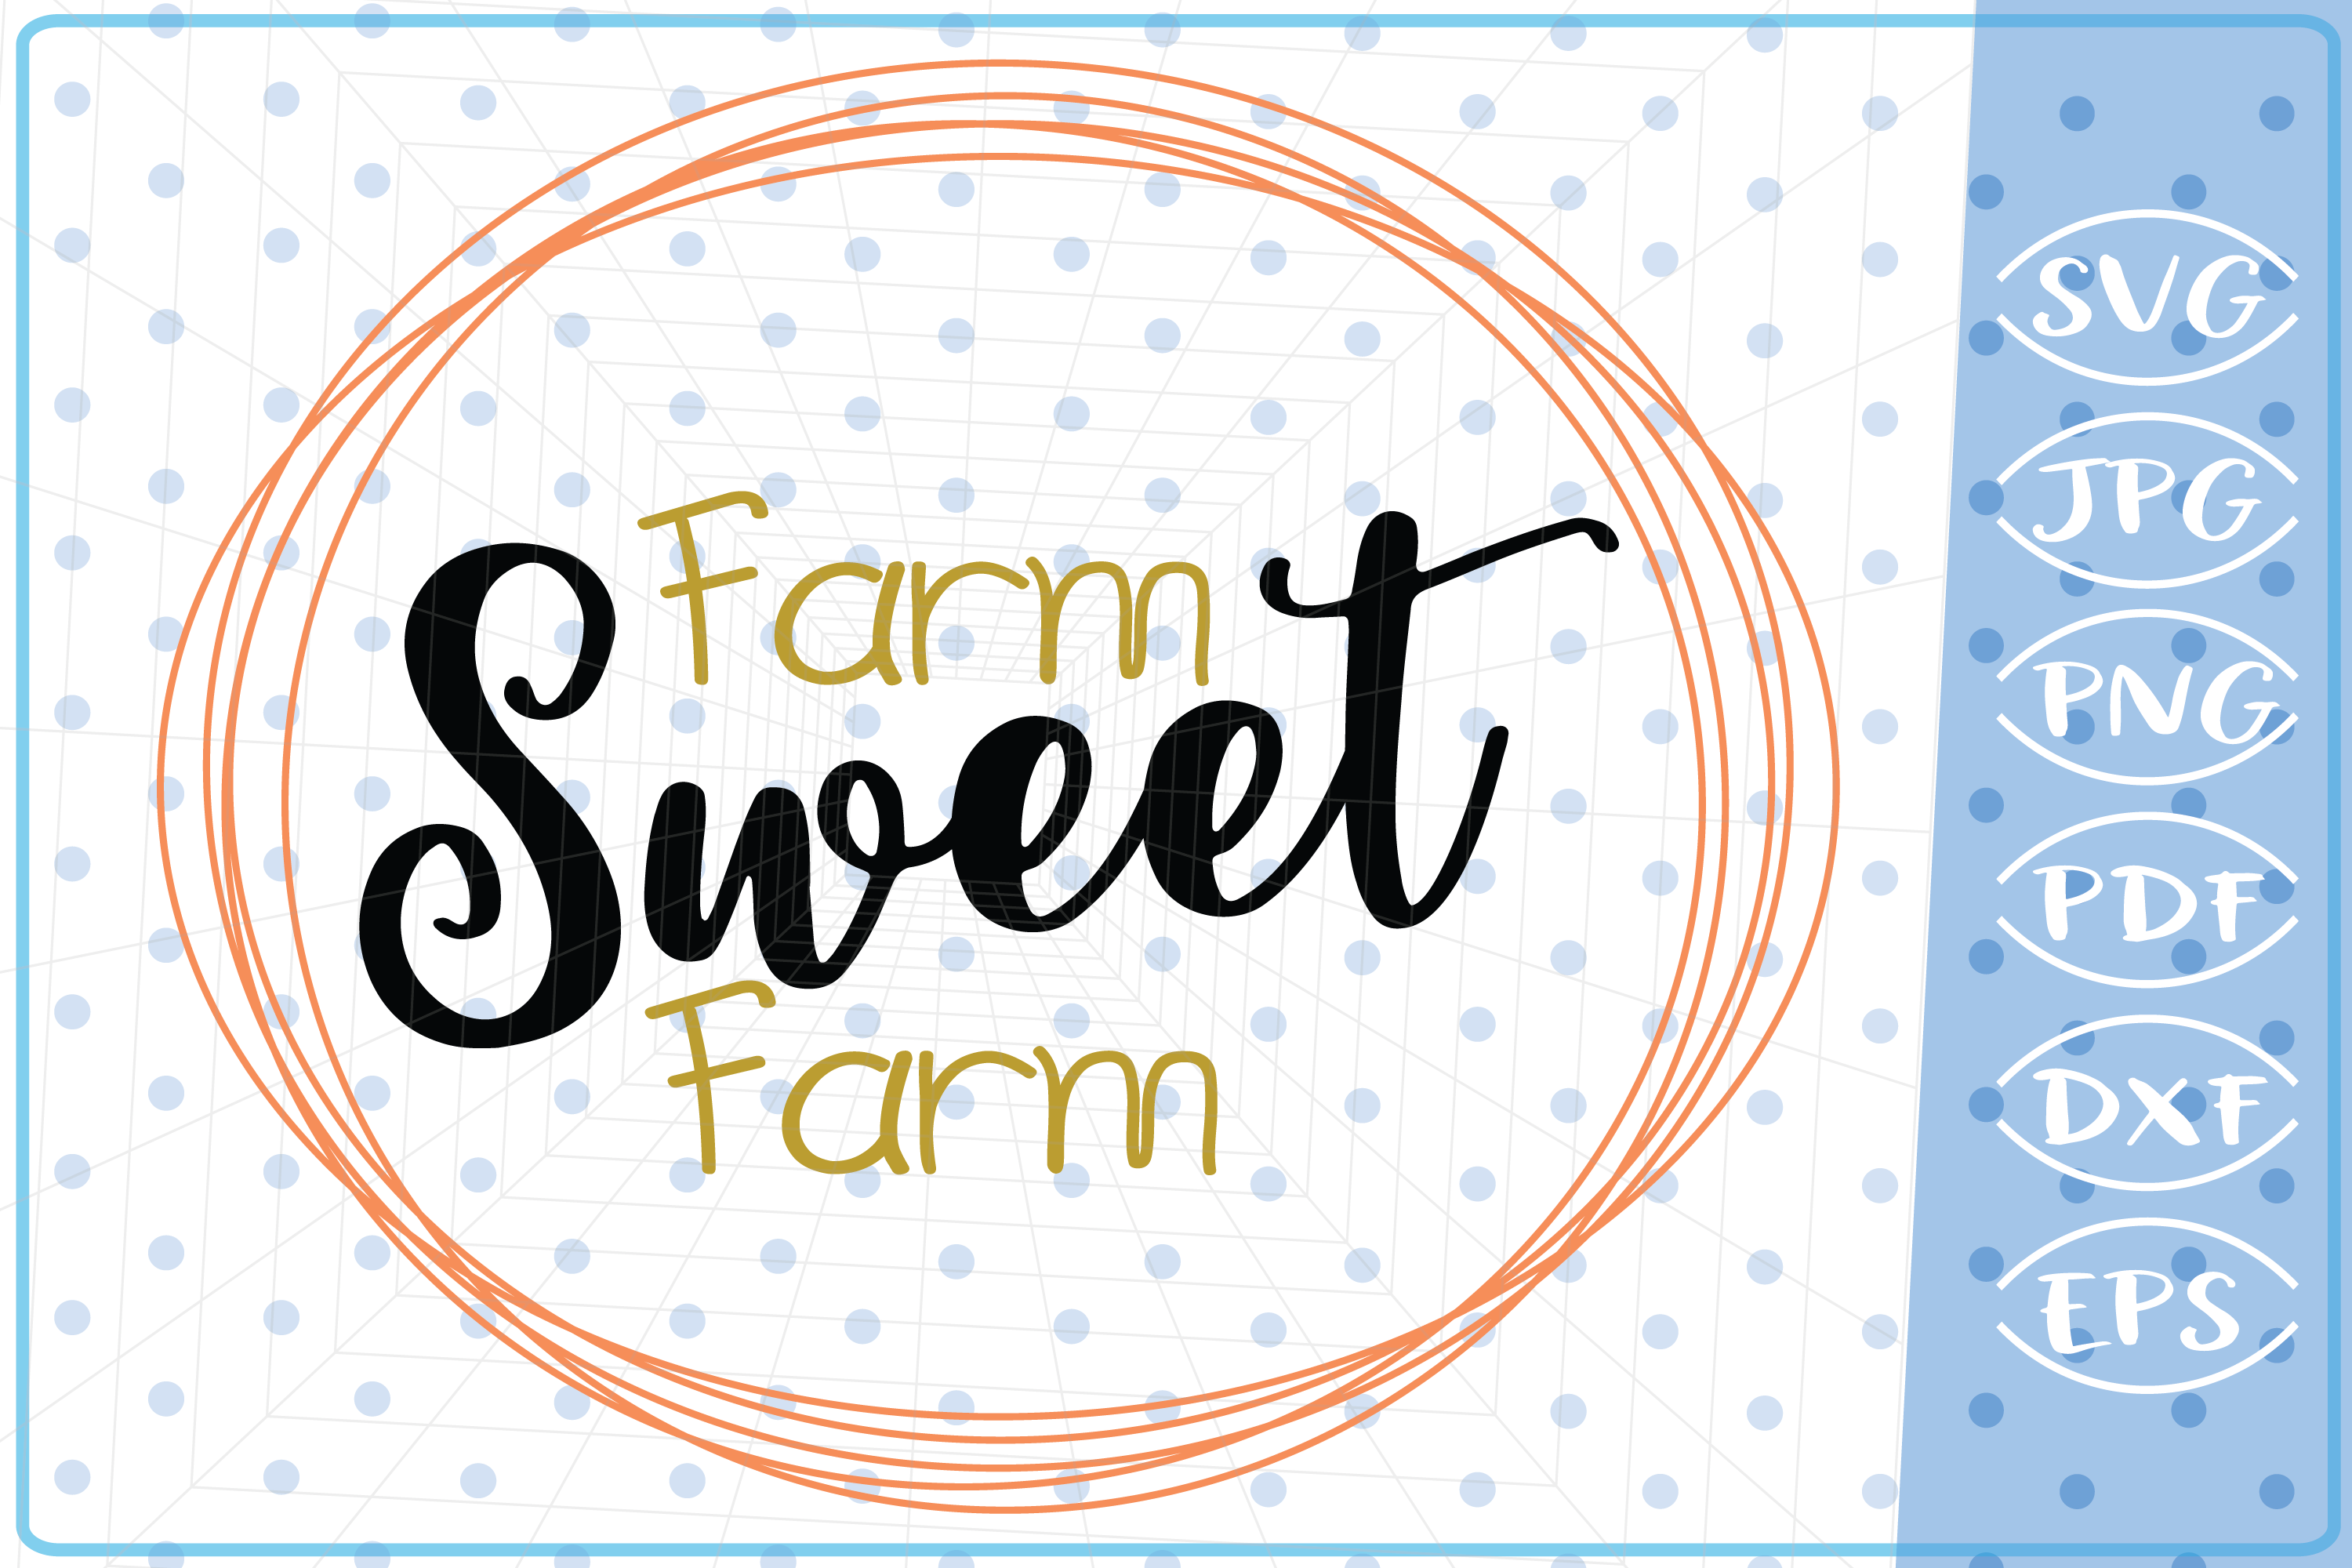 Download Free Farm Sweet Farm Graphic By Cute Graphic Creative Fabrica for Cricut Explore, Silhouette and other cutting machines.